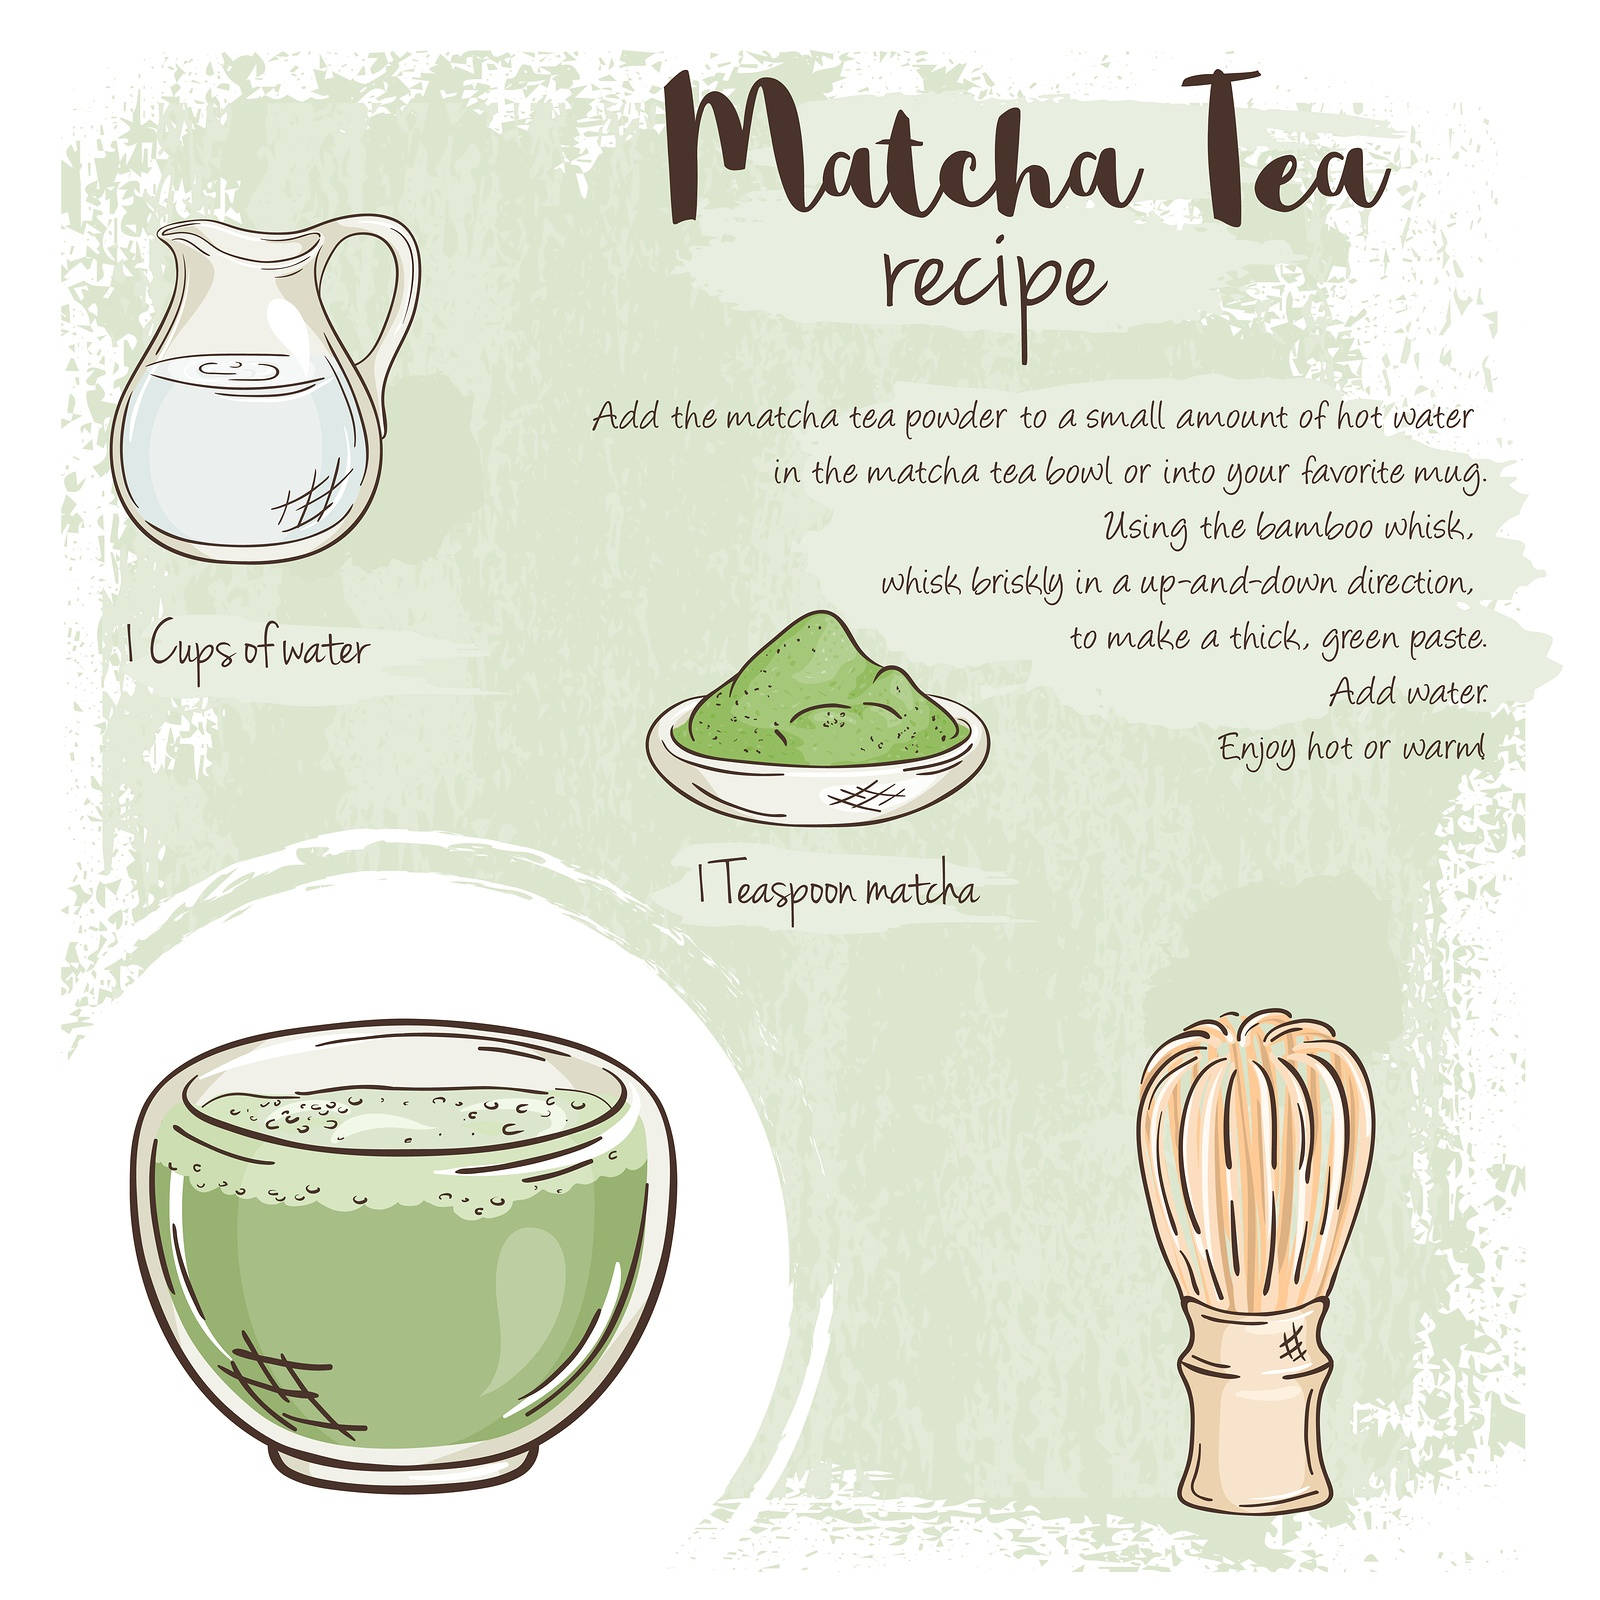 How to prepare Matcha